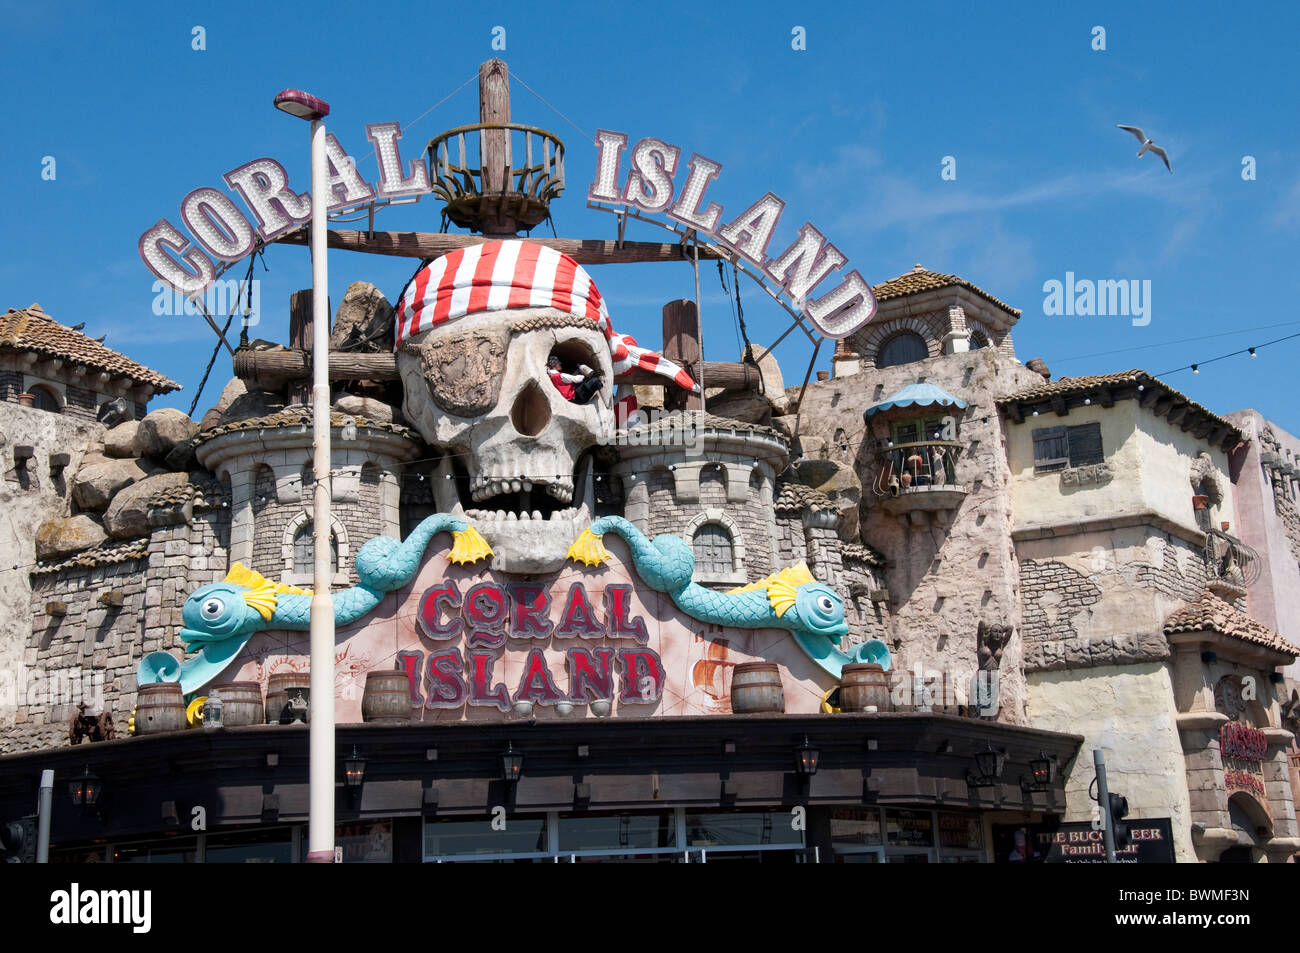 The Coral Island Complex on the Golden Mile in Blackpool on the coast of Lancashire in Northern England - Stock Image